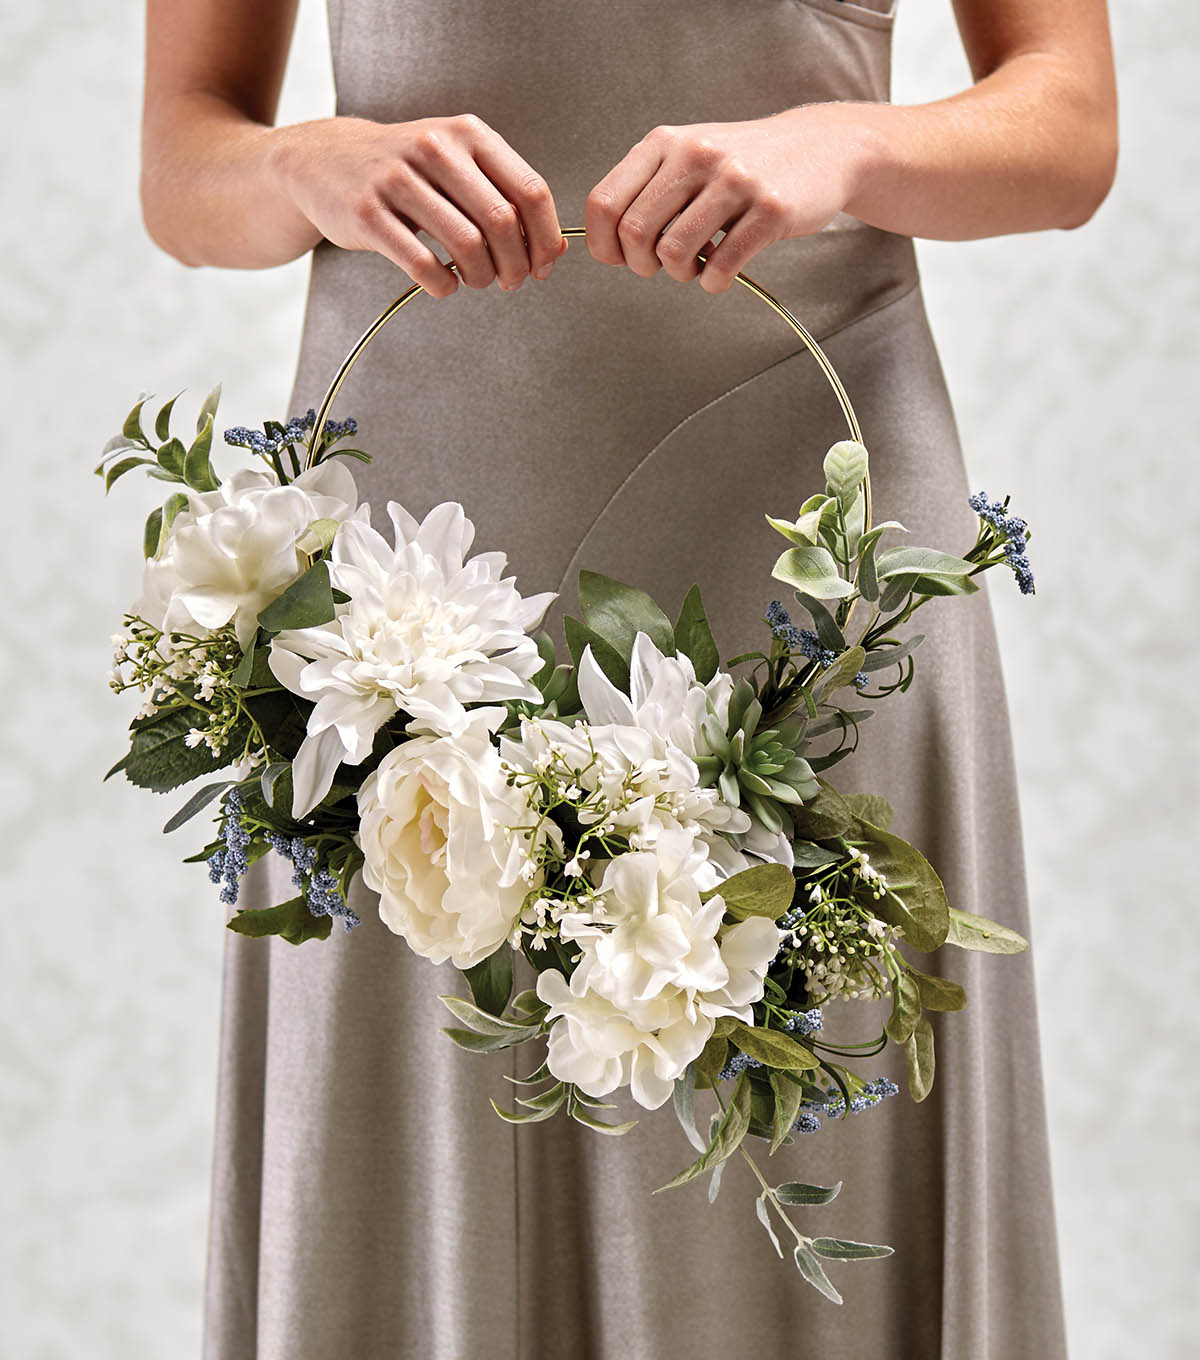 How To Make A Metal Ring Bouquet Joann